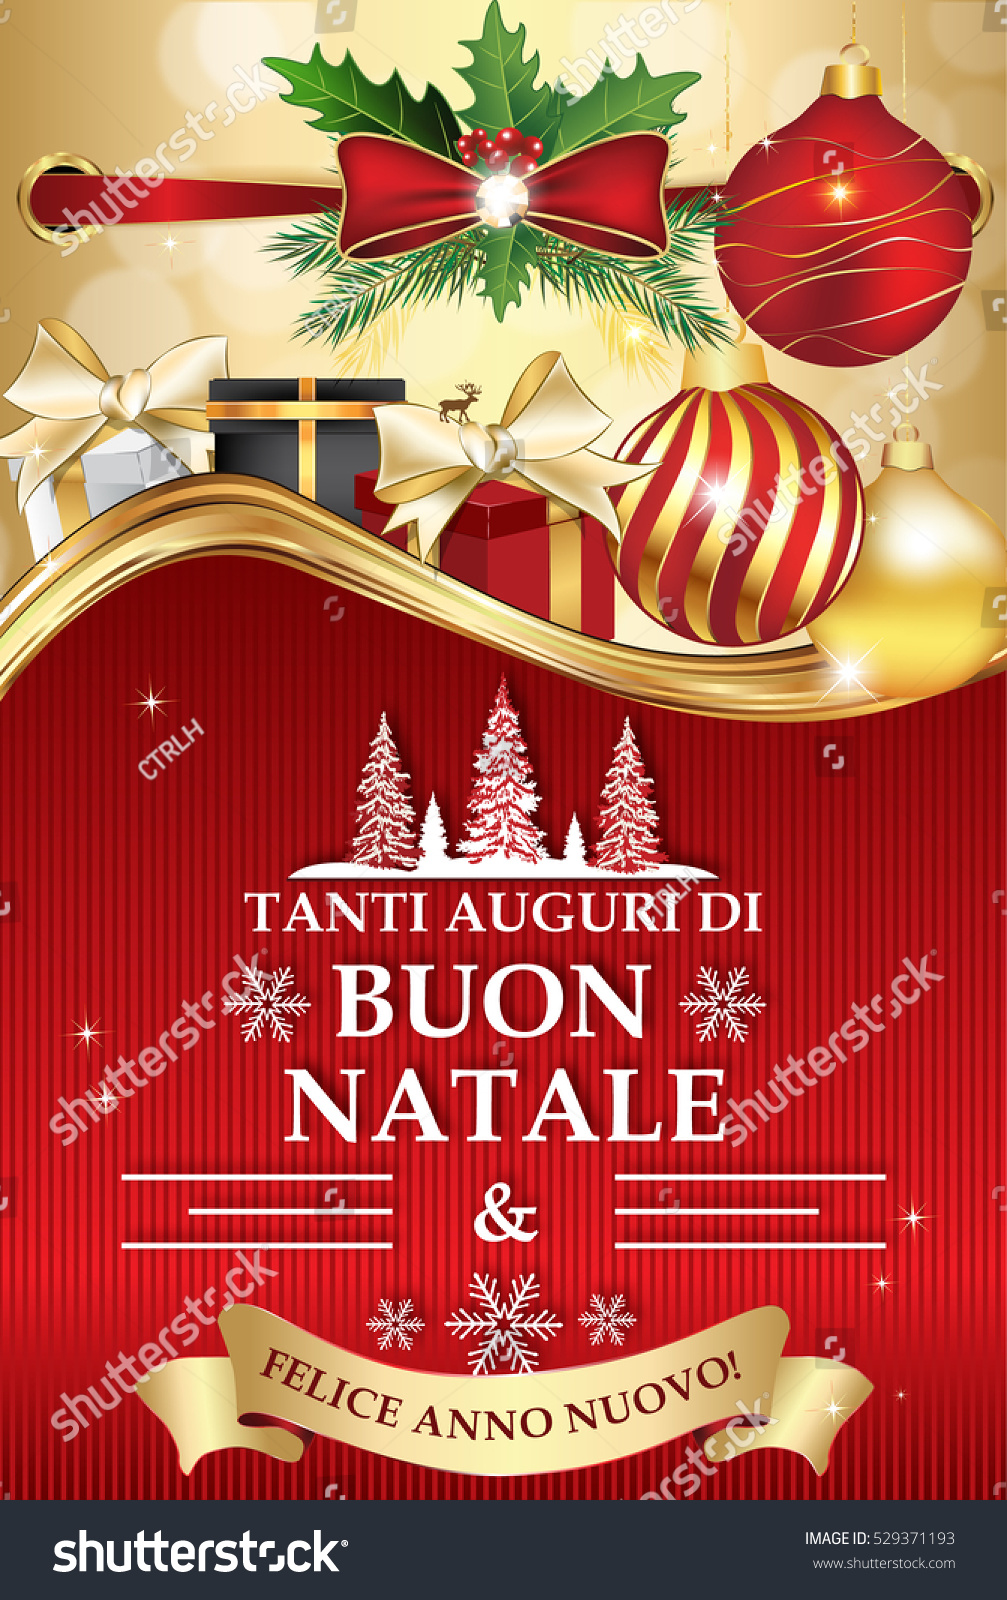 italian greeting card for winter holiday merry christmas and happy new year tanti auguri